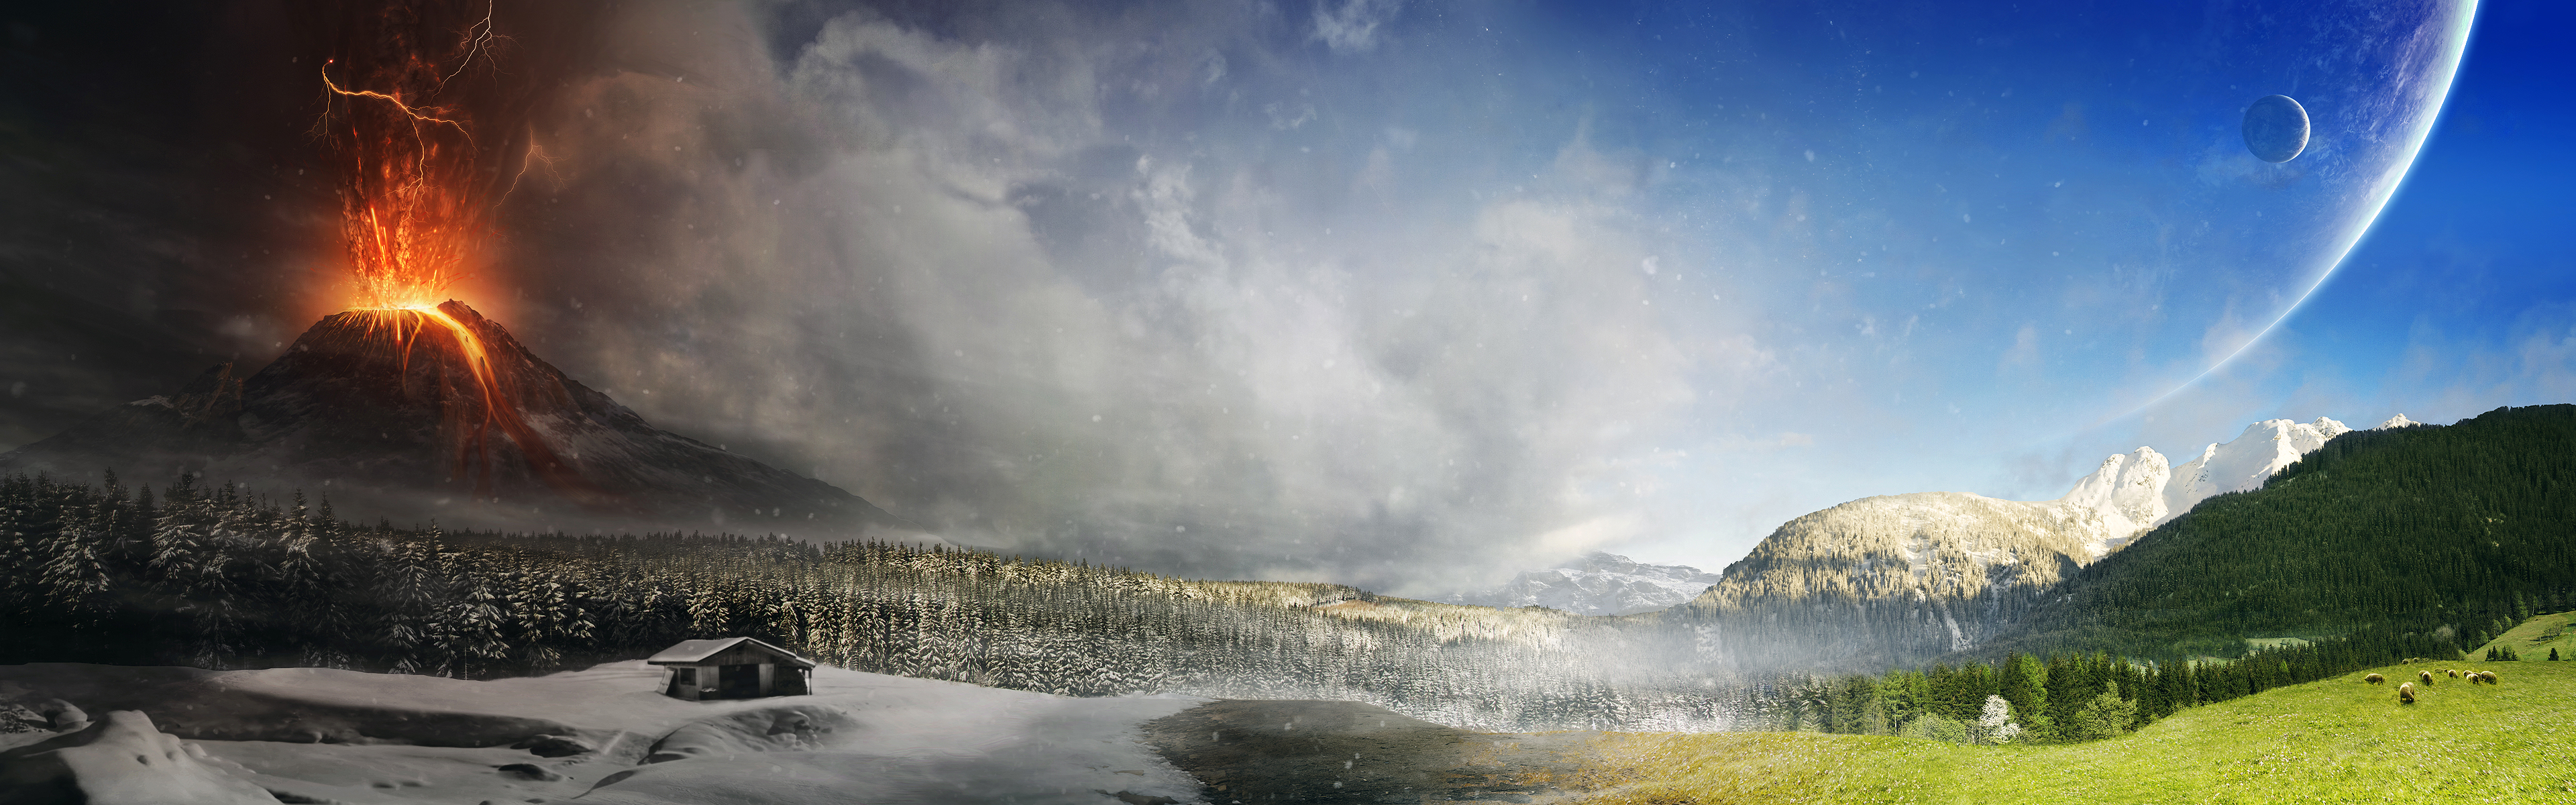 Full HD Wallpapers Dual Screen Nature by Tobias Roetsch Eruptions 3840x1200